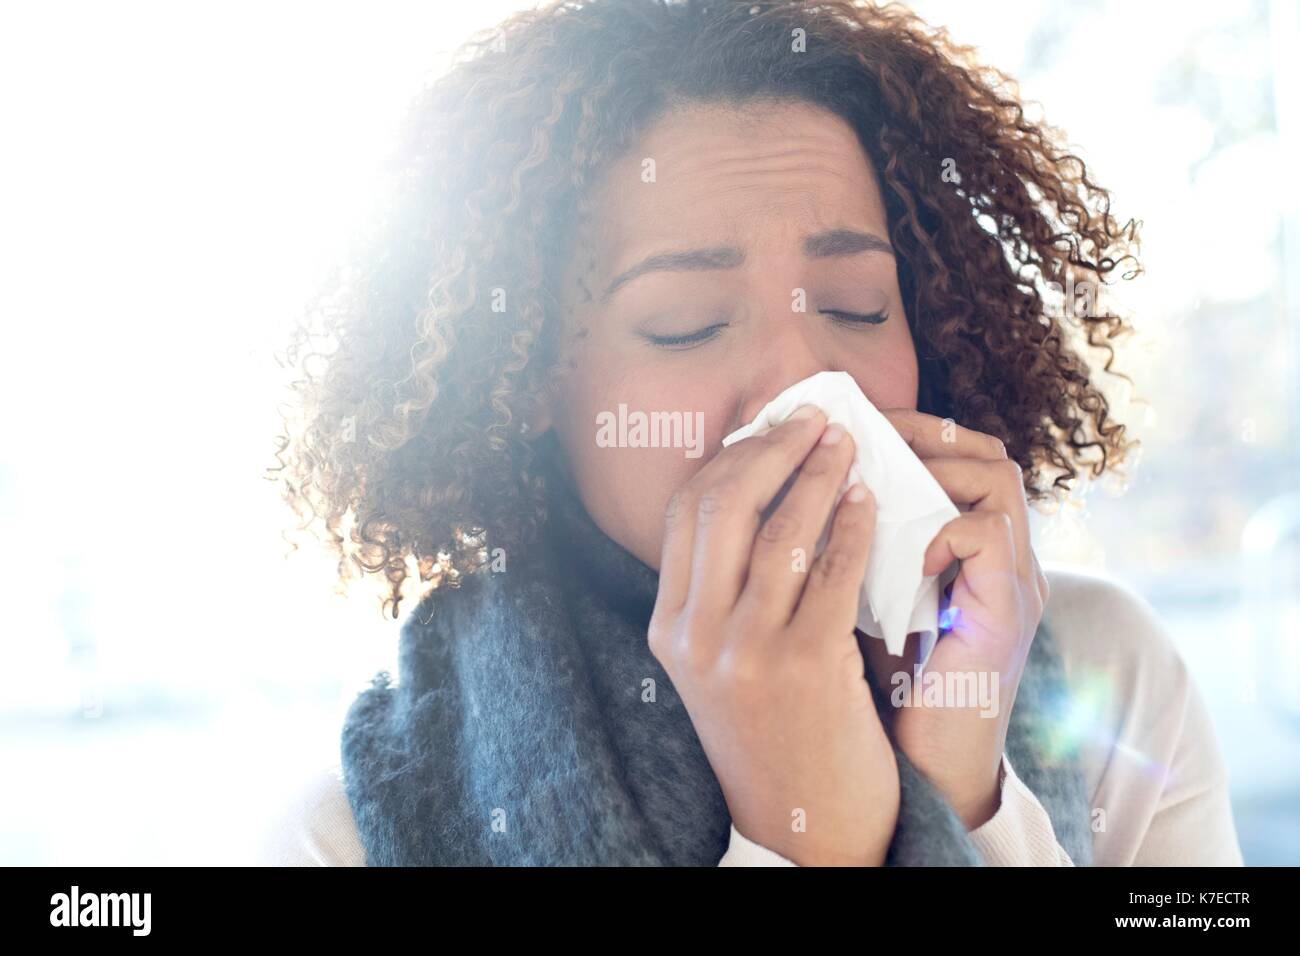 Mid adult woman blowing nose on tissue. - Stock Image